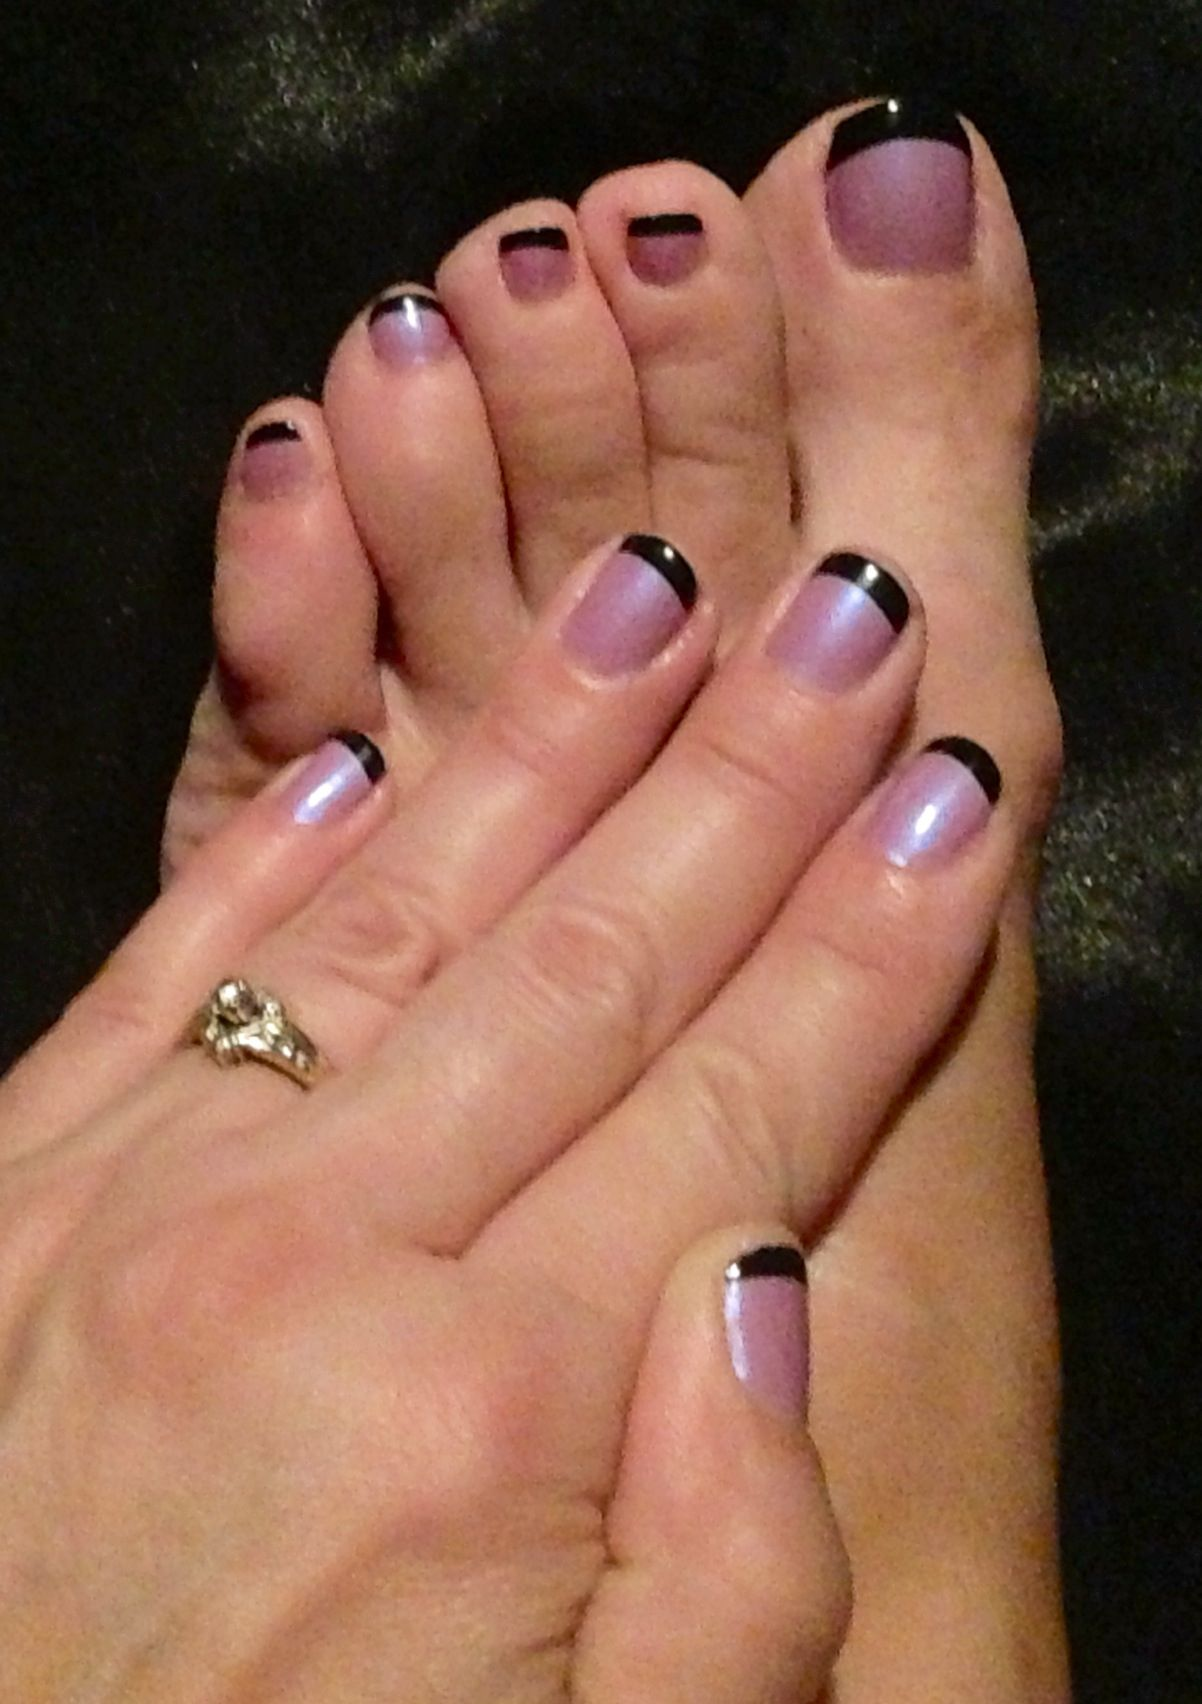 Nails toe French with diamonds pictures forecast to wear for winter in 2019